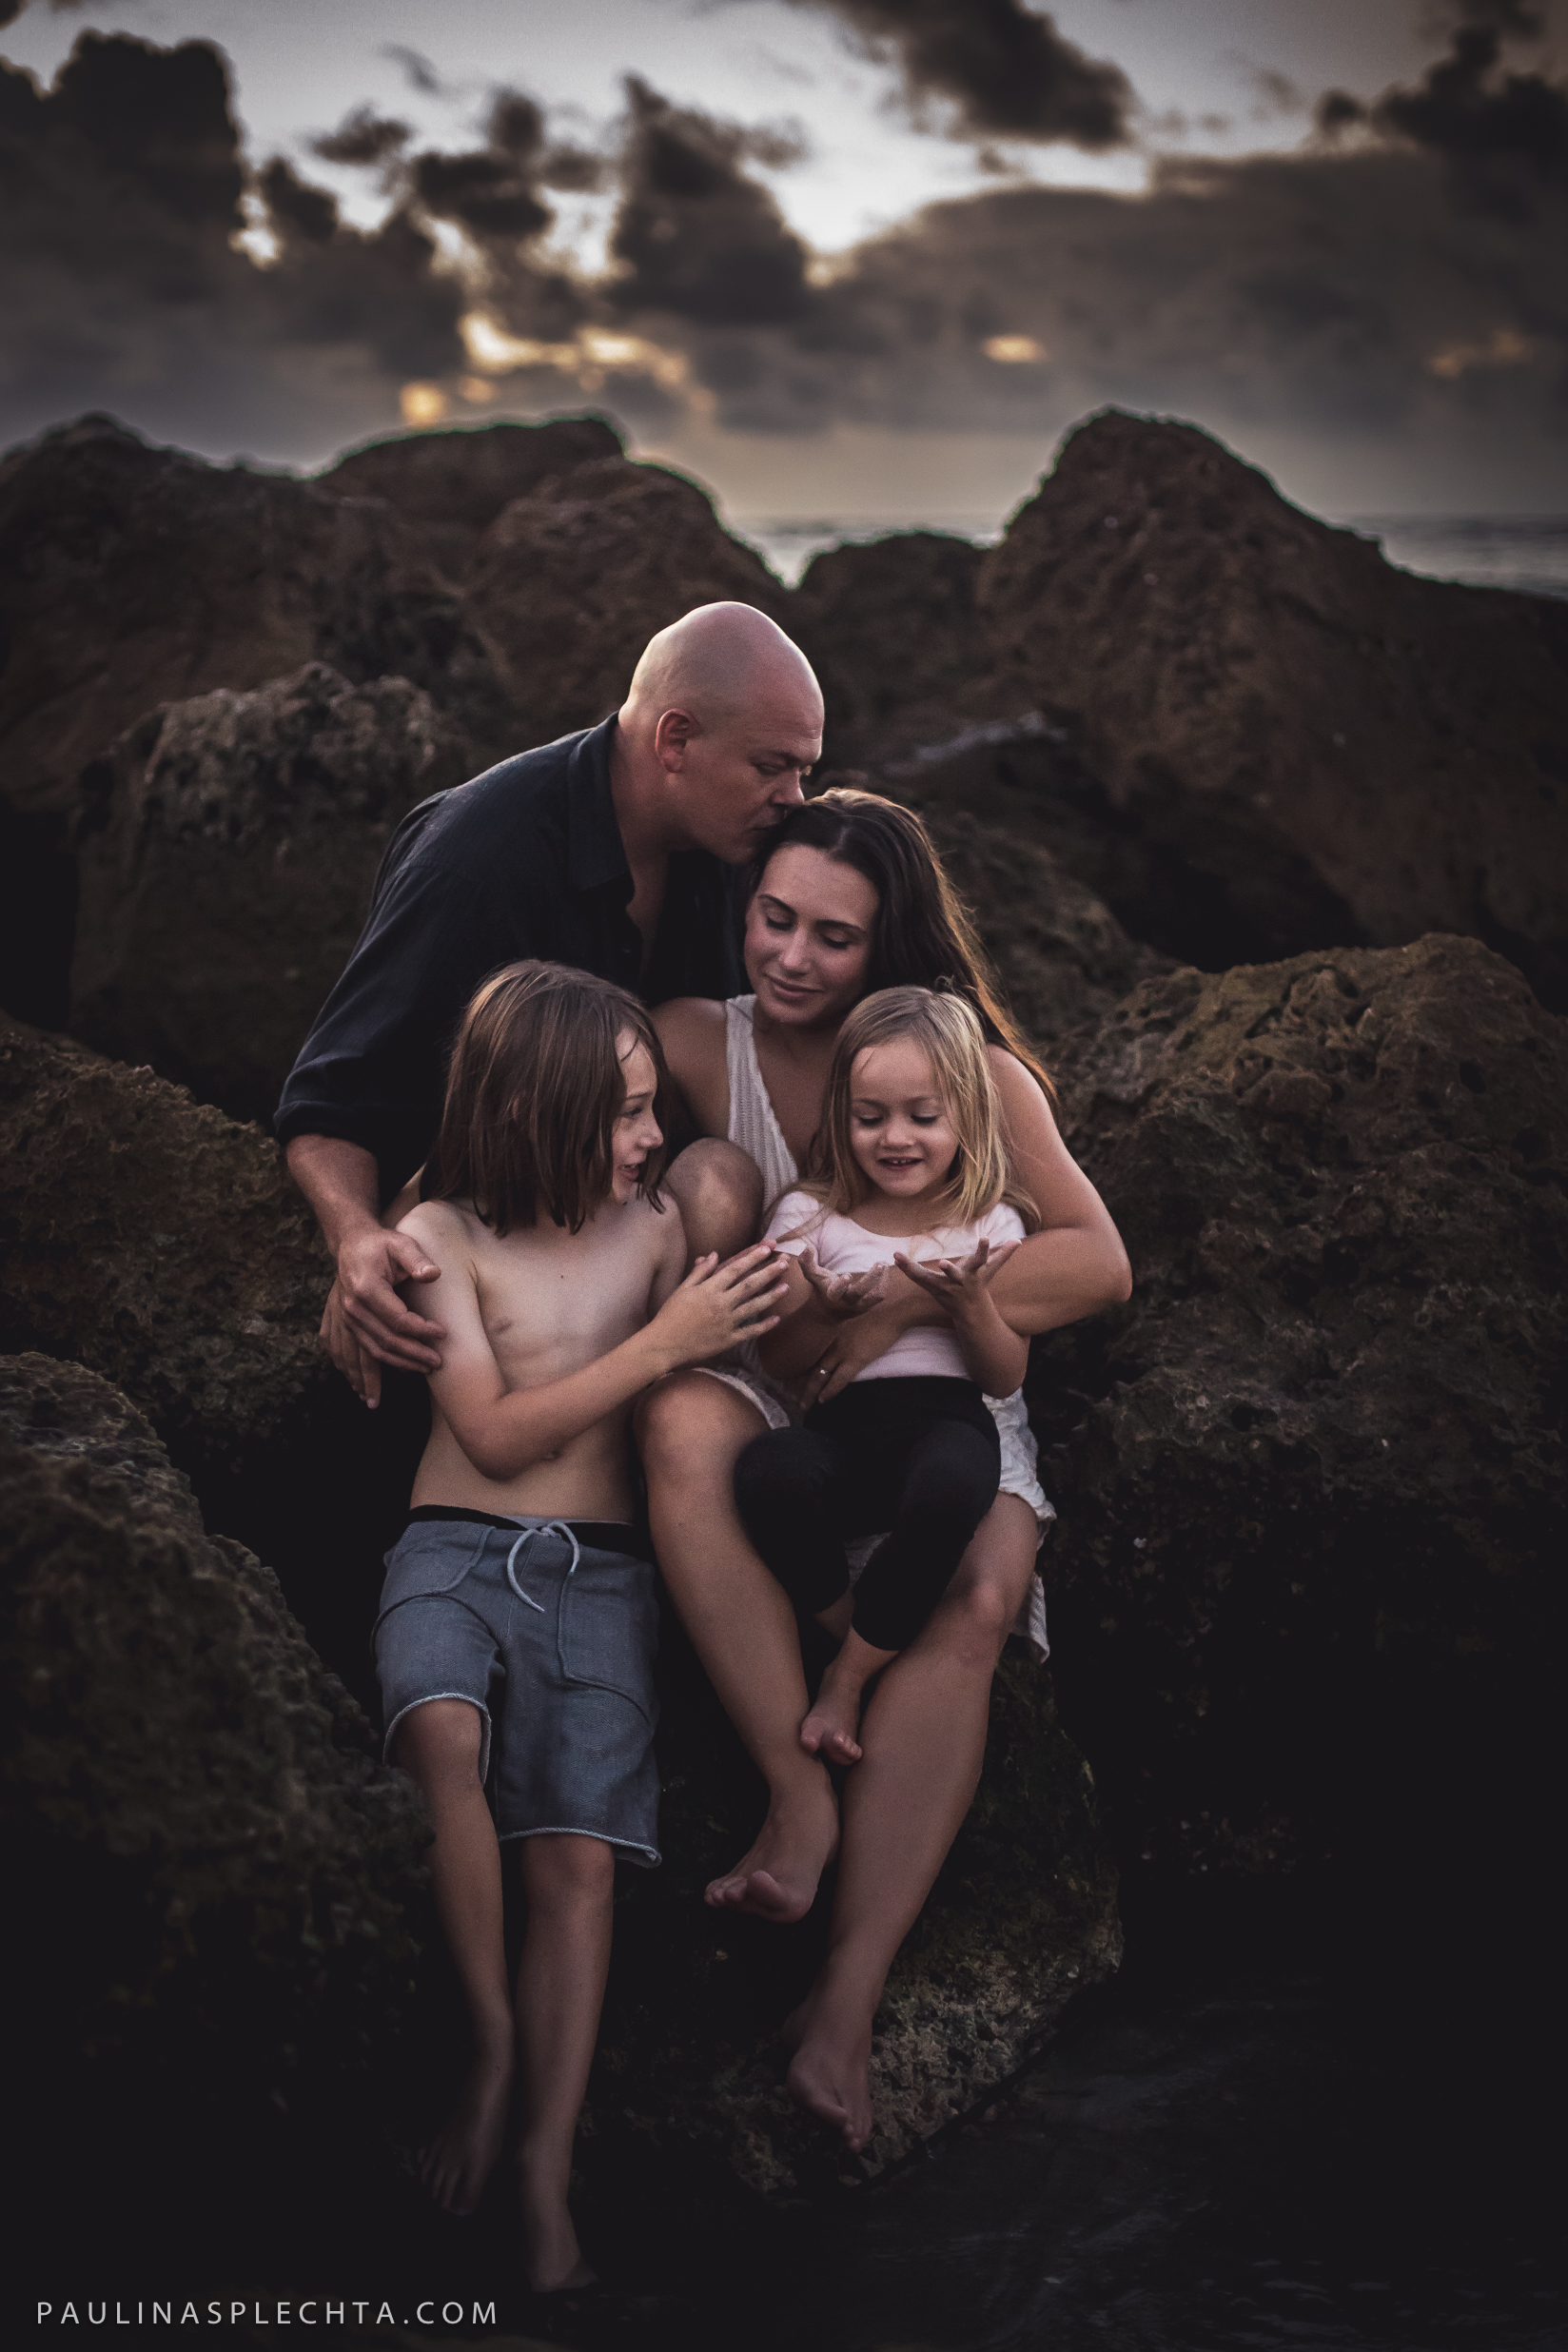 boca-raton-family-photographer-delray-beach-family-session-birthday-newborn-baby-park-session-photography-1.jpg